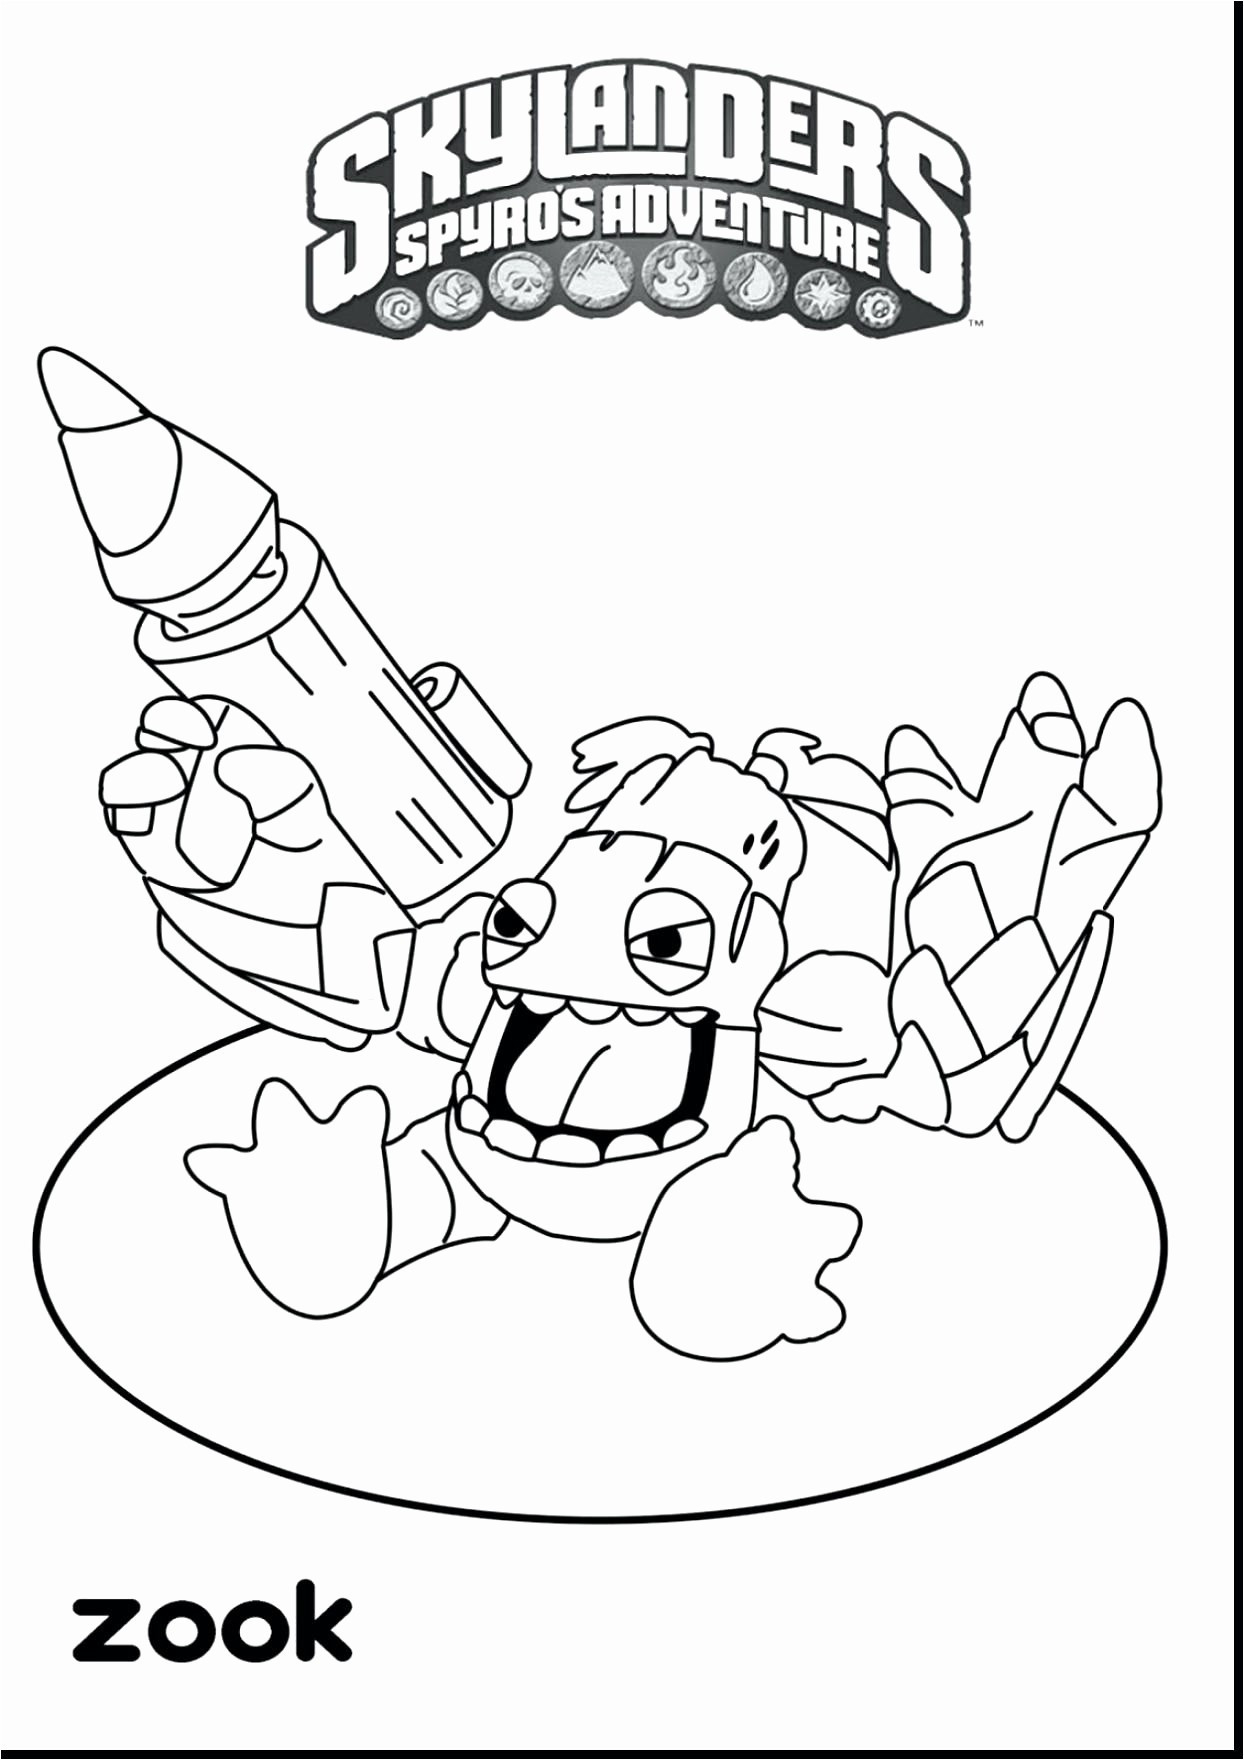 Personalized Happy Birthday Coloring Pages - Fresh 49 Fresh Graph Custom Coloring Page